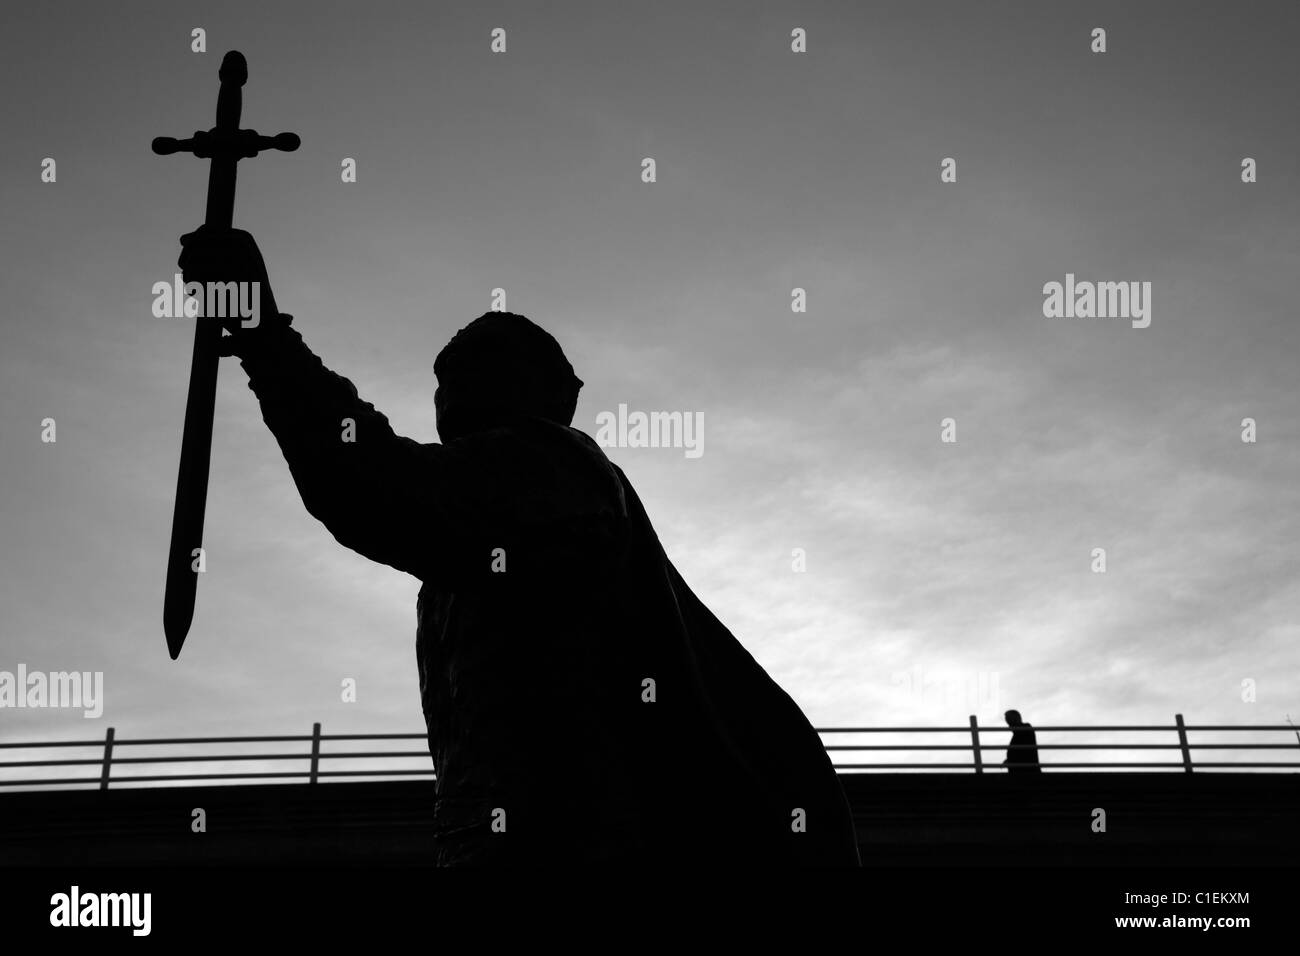 Statue of Laurence Olivier as Hamlet on the Queen's Walk in front of Waterloo Bridge, South Bank, London, UK - Stock Image